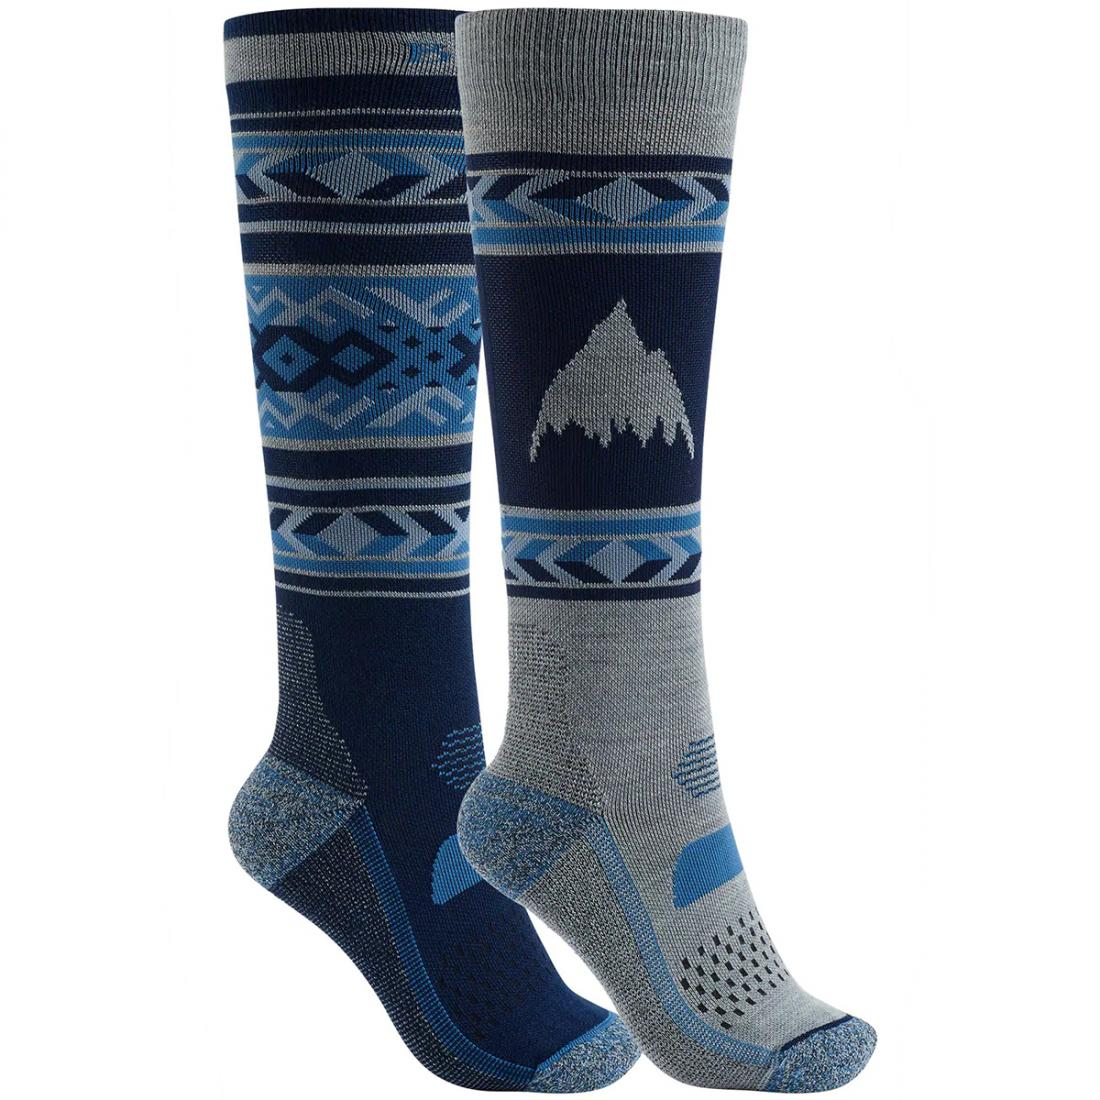 Носки сноубордические Burton Performance Lightweight Snowboard Sock 2 Pack купить в Boardshop №1